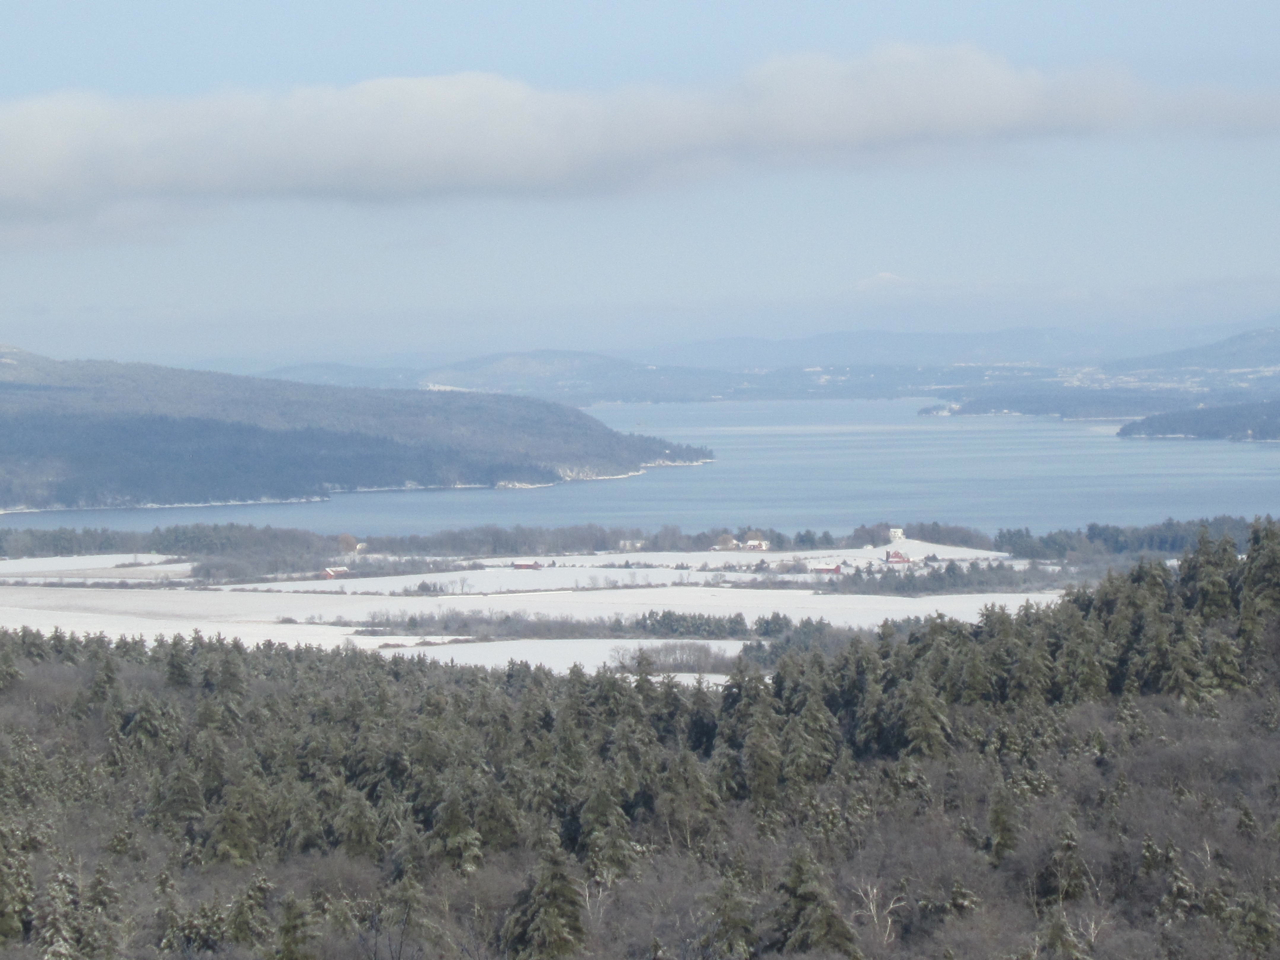 Looking north from Pinnacle on Christmas Day